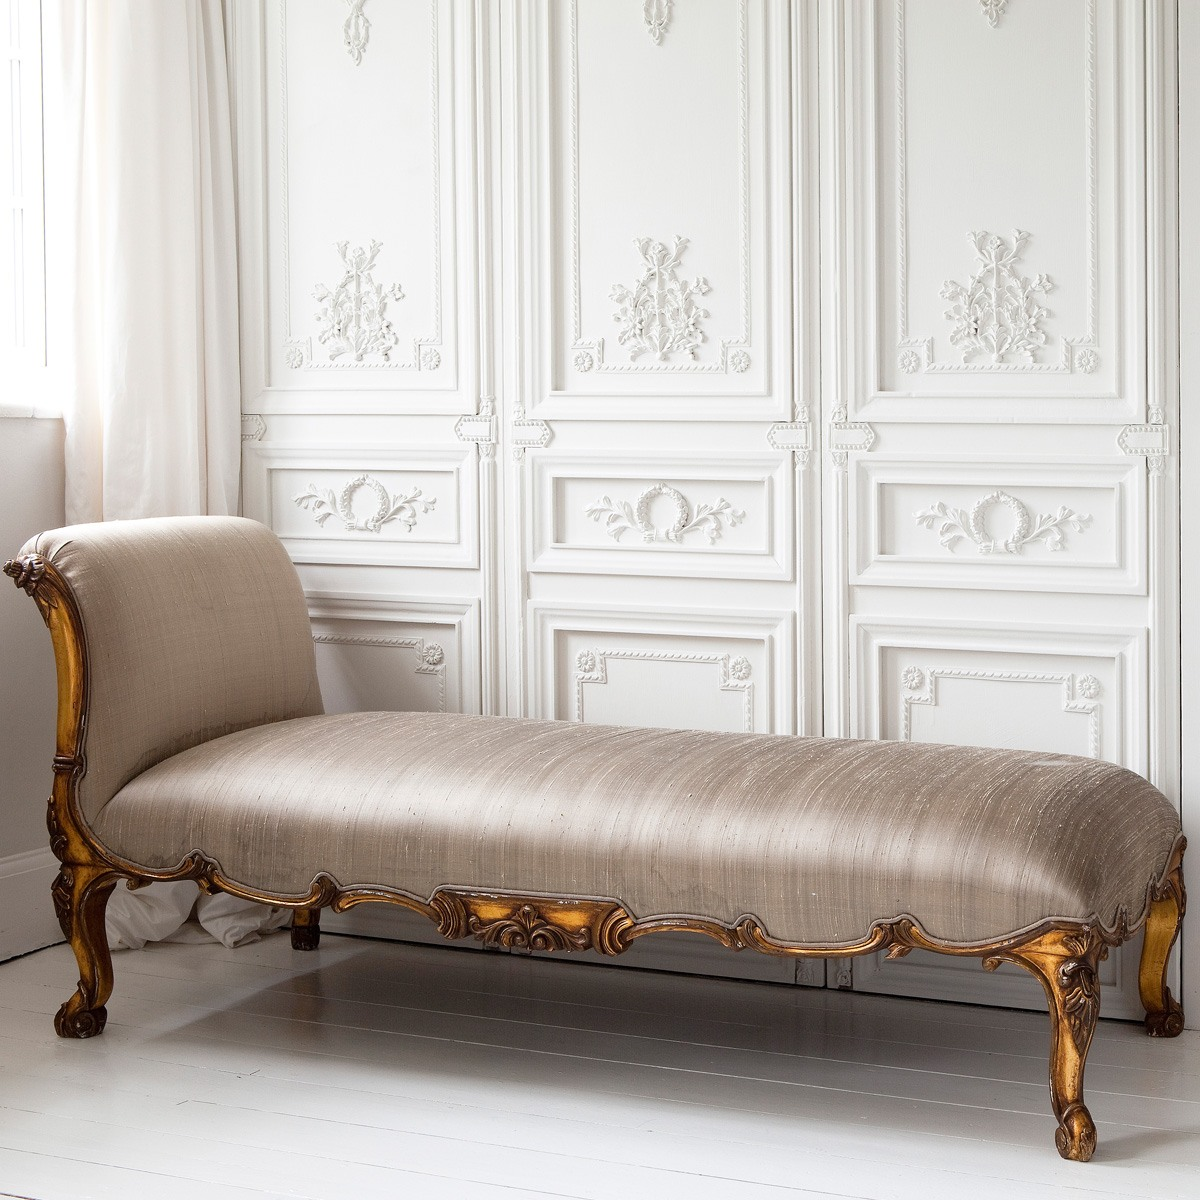 Versailles gold chaise longue french bedroom company for Chaise longue sofa